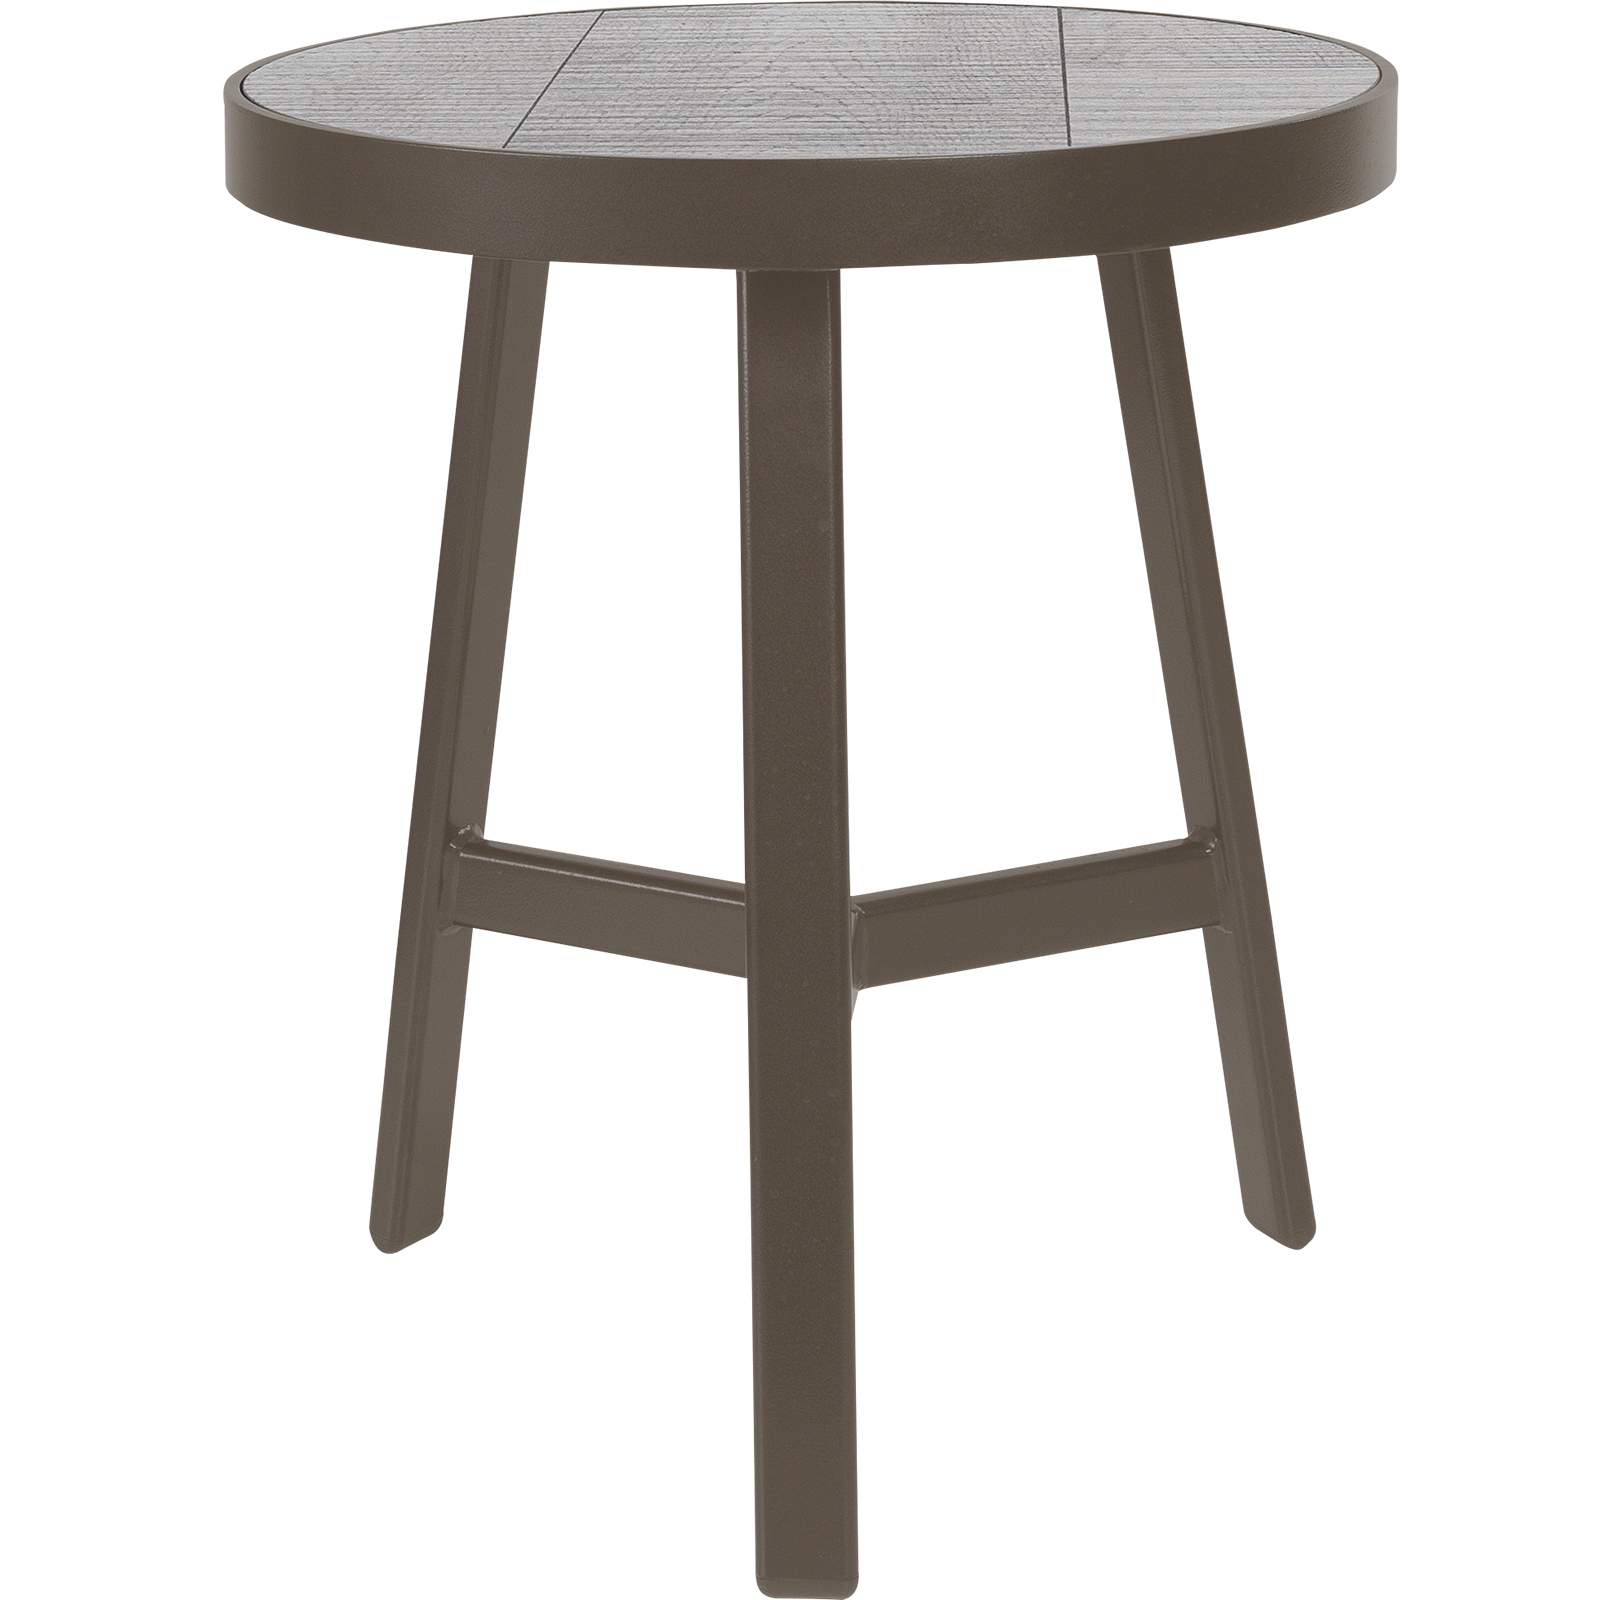 Marin Accent Tables